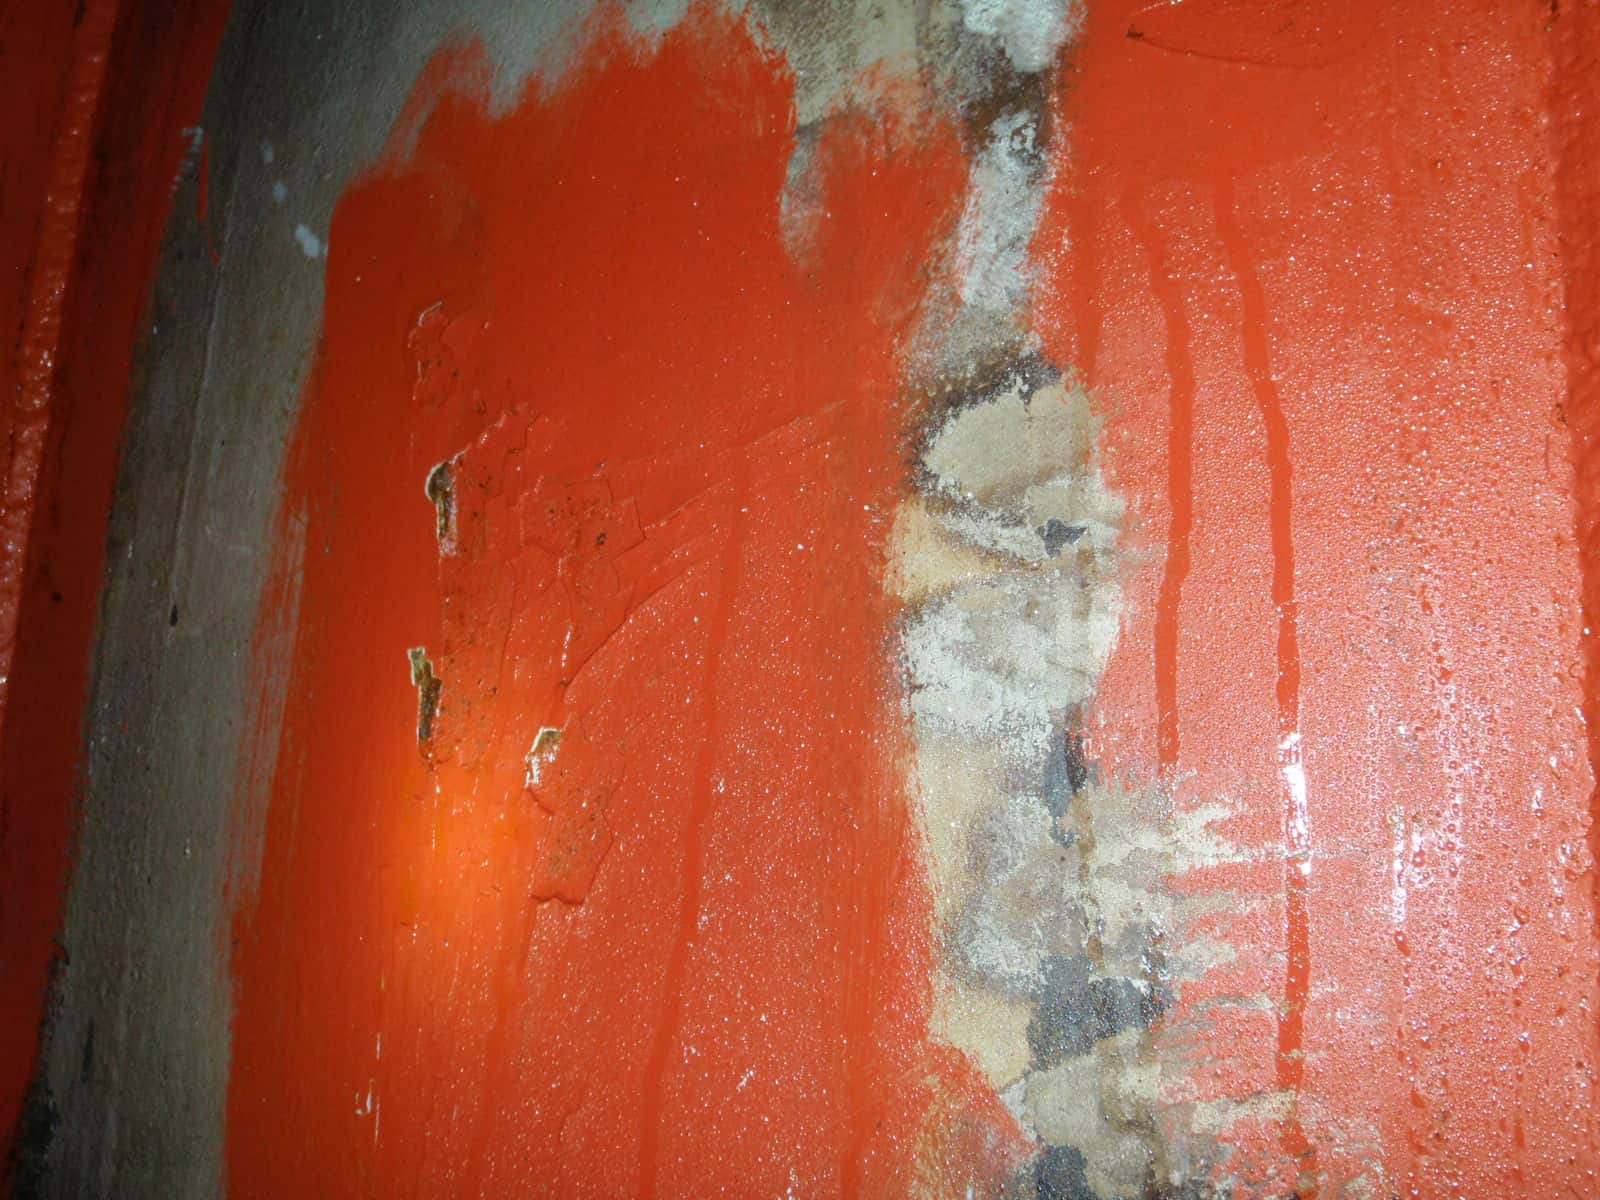 moisture lines on rusted internal red tank wall